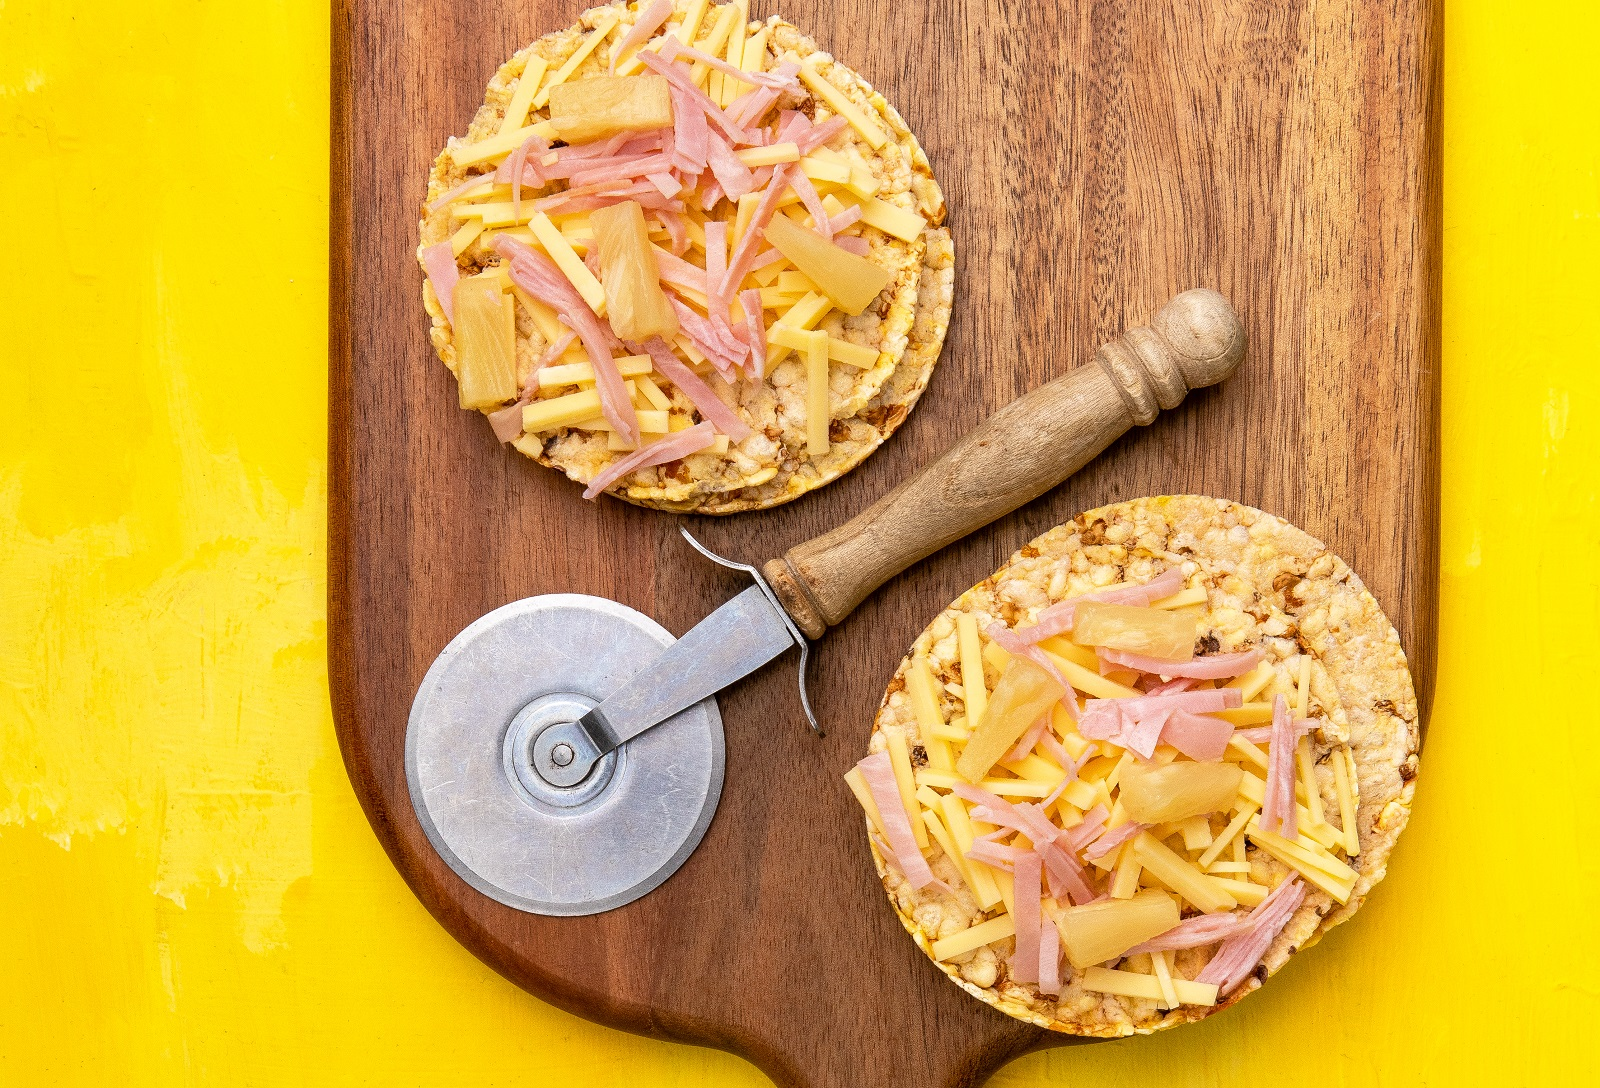 Hawaiian Pizza using Corn Thins slices (gluten free)